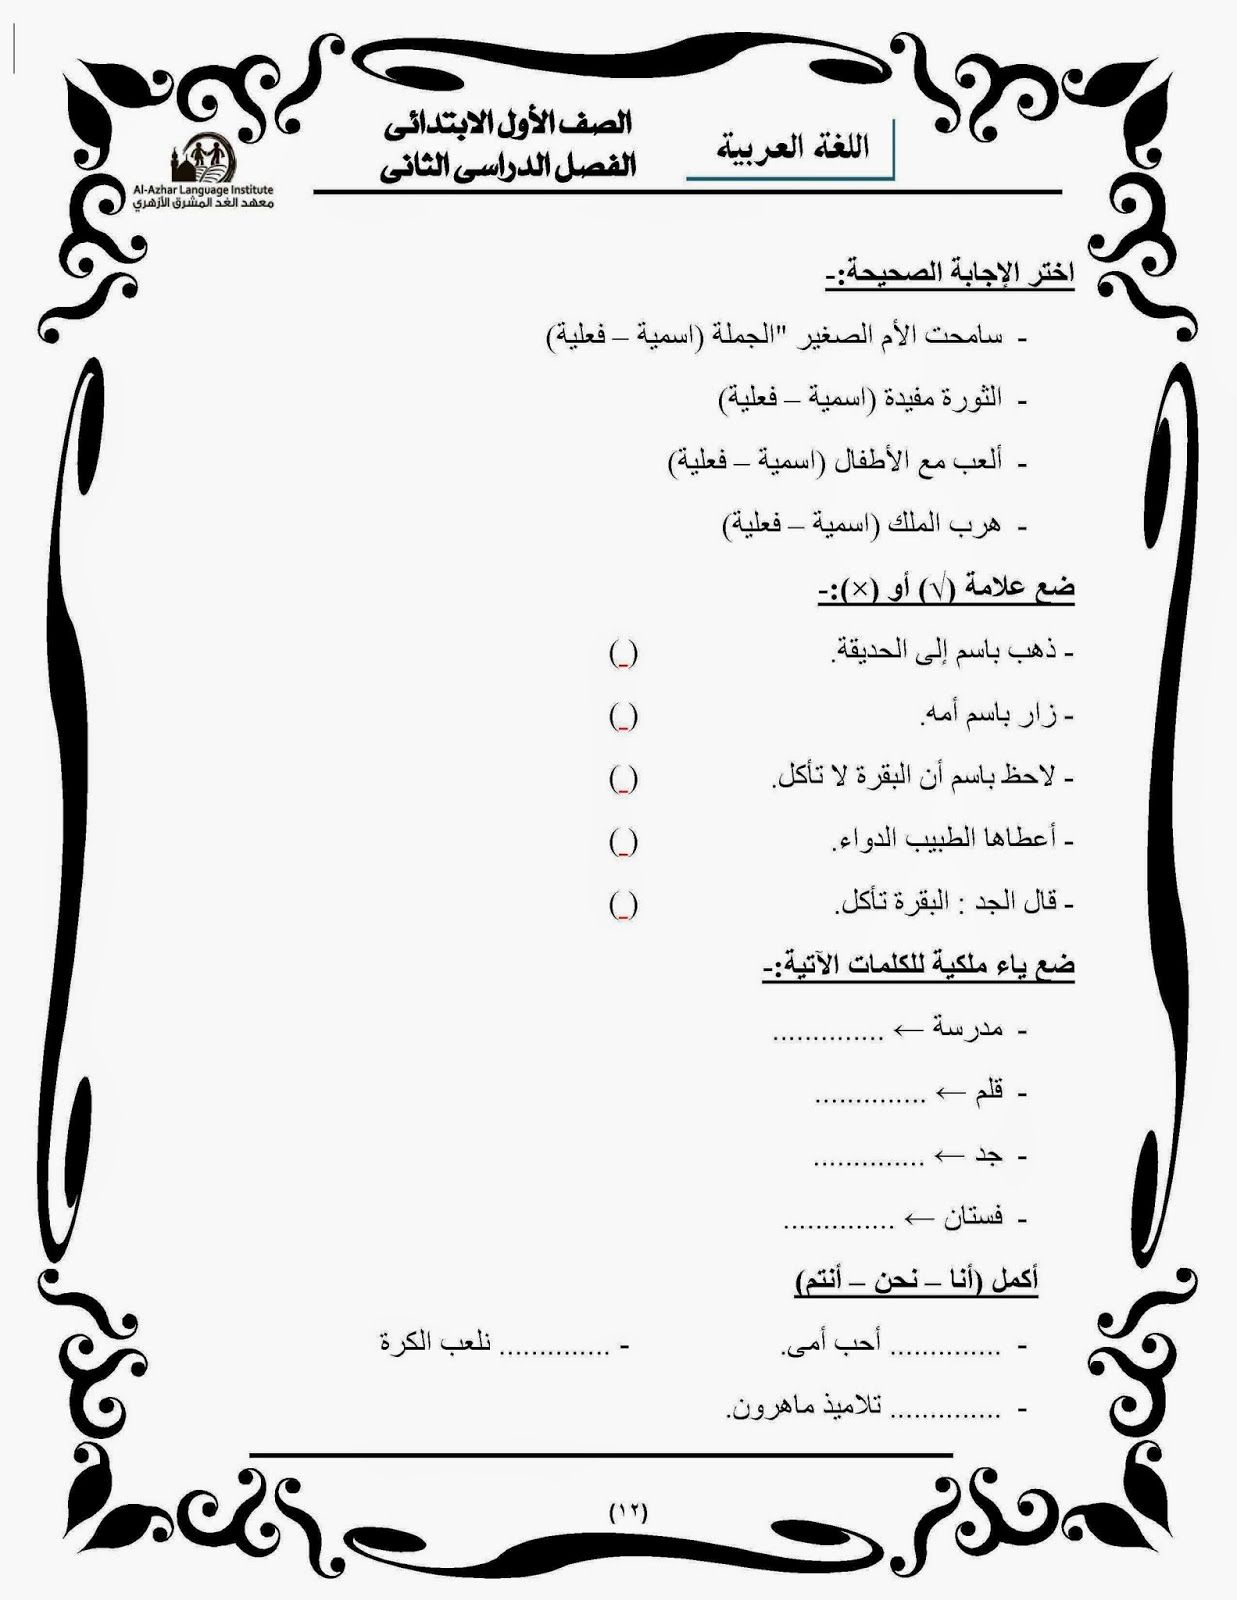 pin by naima mustapha on arabic worksheet learning arabic learn arabic online arabic lessons. Black Bedroom Furniture Sets. Home Design Ideas